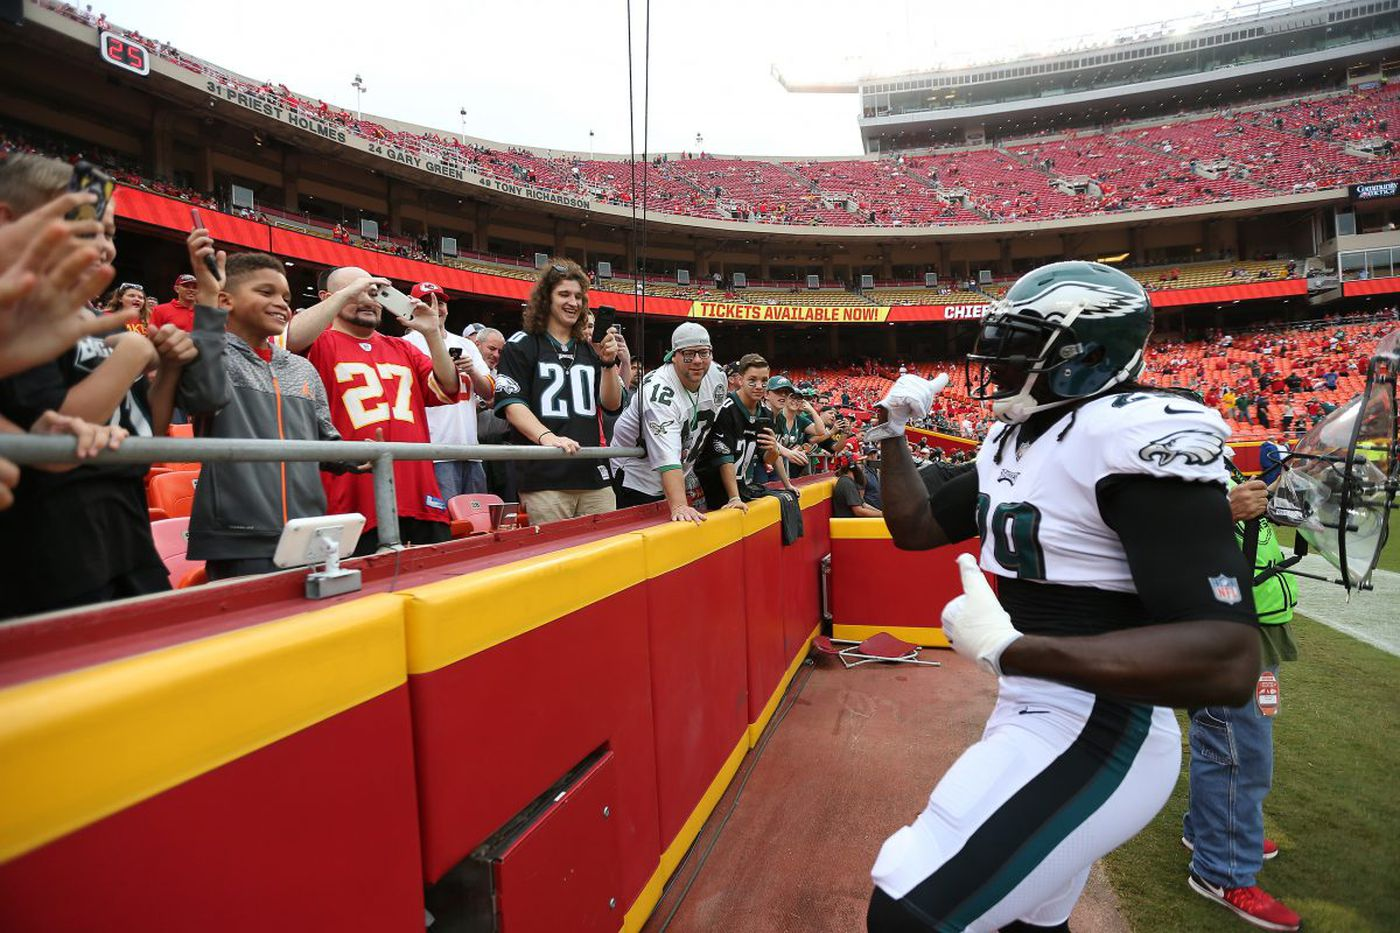 To put it Blountly, Eagles' lack of run game, overall O-line play lost the game